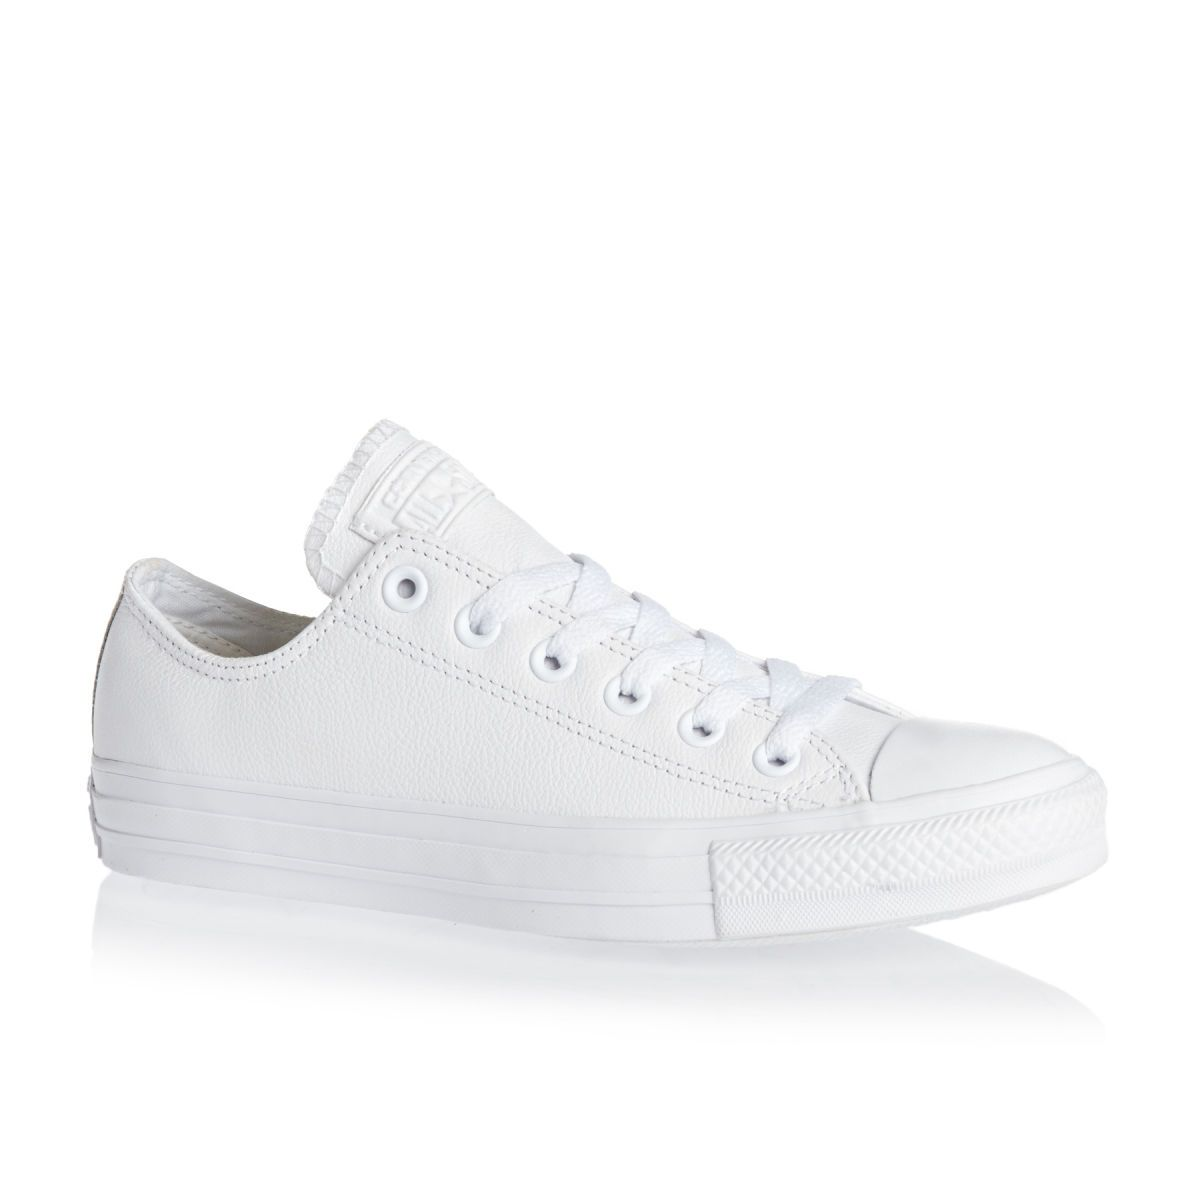 65feb818a1aa Converse Shoes - Converse Chuck Taylor All Star Leather Ox Shoes - White